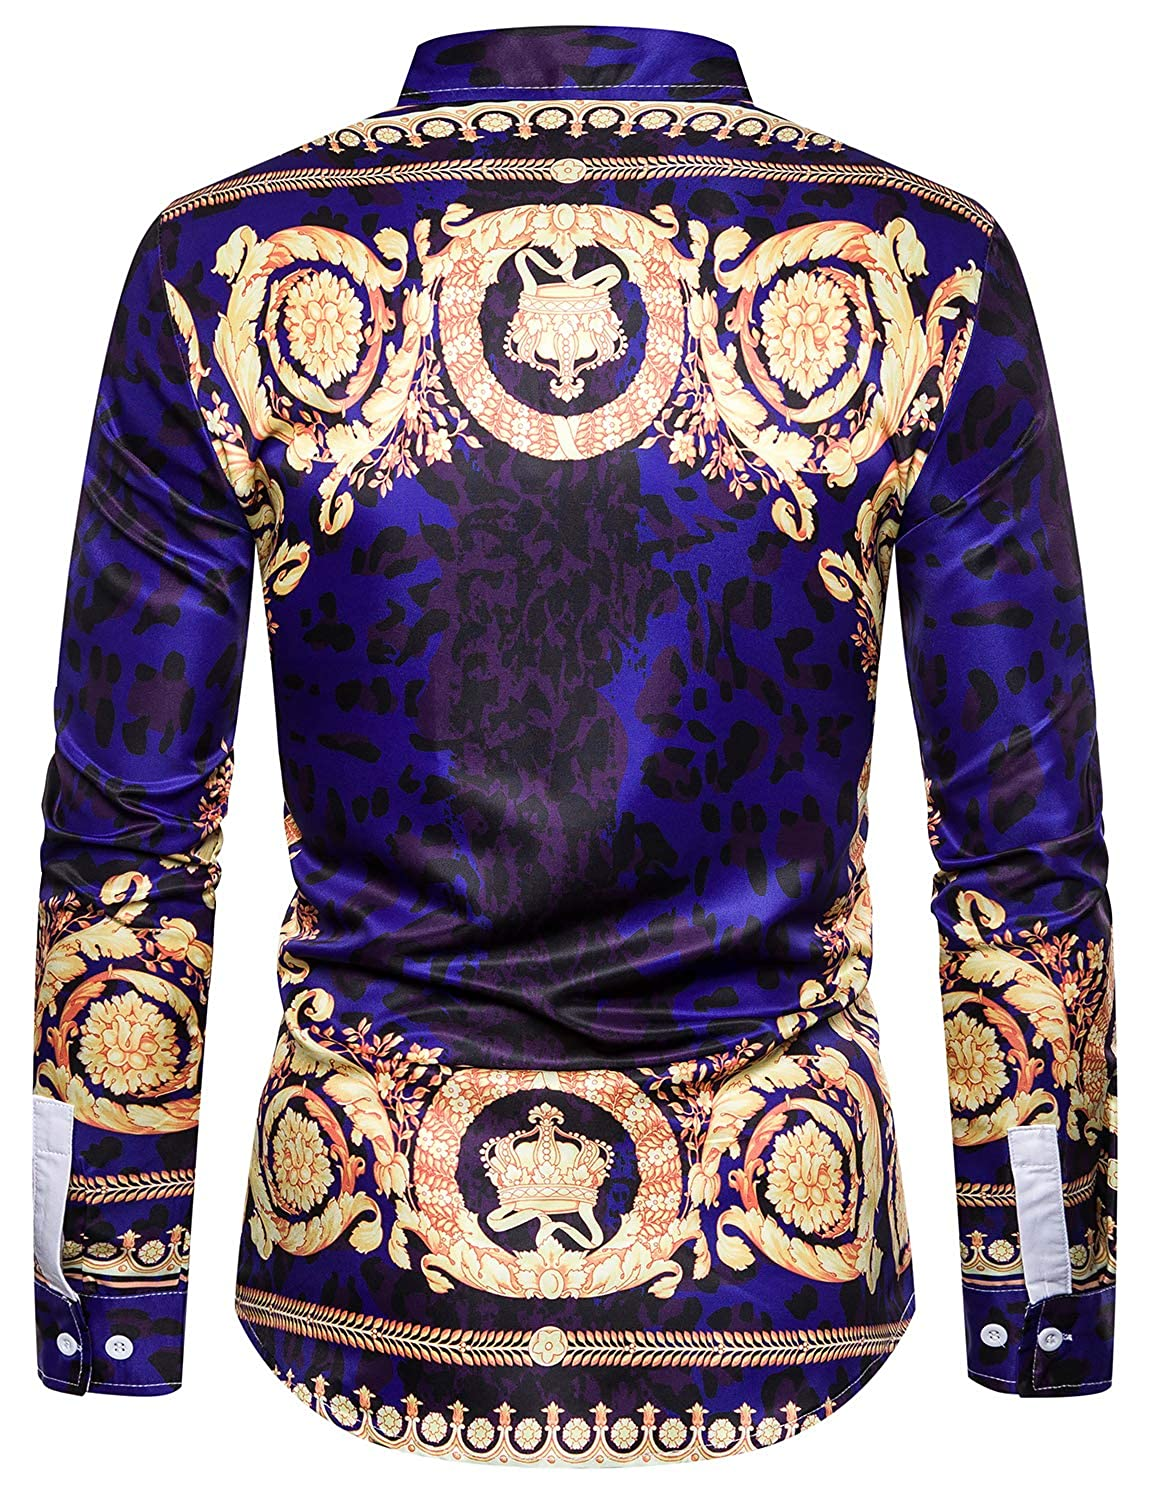 ief.G.S Mens Luxury Printed Dress Shirts Fashion Long Sleeve Silm Fit Design Novelty Button-Down Shirts